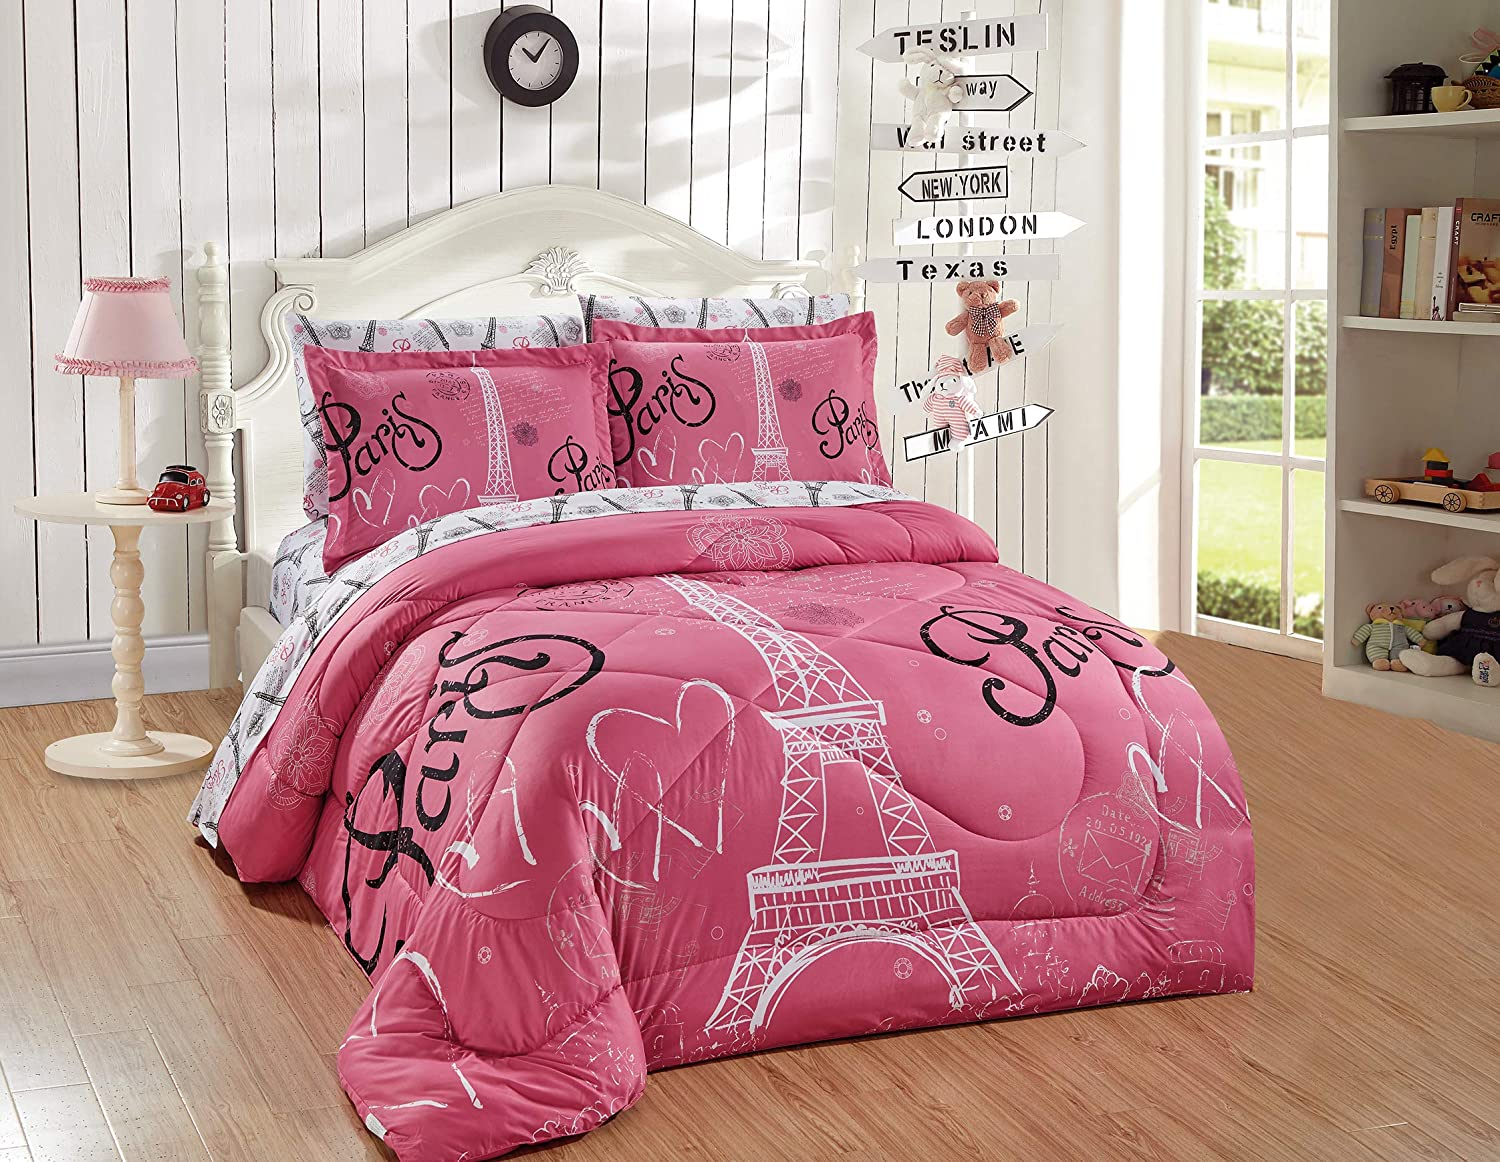 Better Home Style Pink White Black Paris Eiffel Tower Bonjour Design 7 Piece Comforter Bedding Set Bed in a Bag with Complete Sheet Set # FS Paris Pink (Queen)